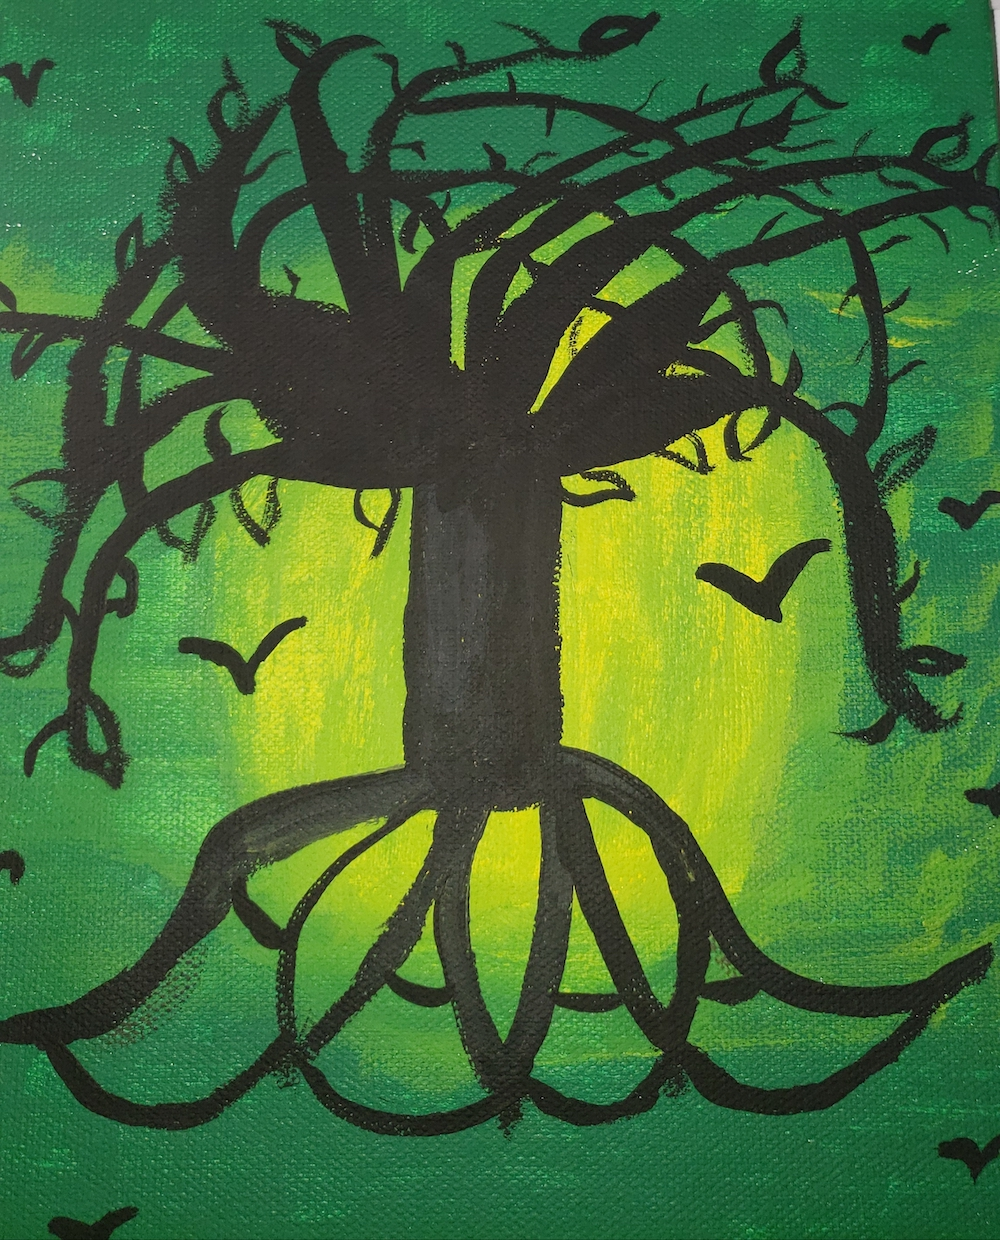 A painting of a silhouette of a free with branches, roots, and birds flying near it, against dark green and yellow-green background. Art painted by the author.